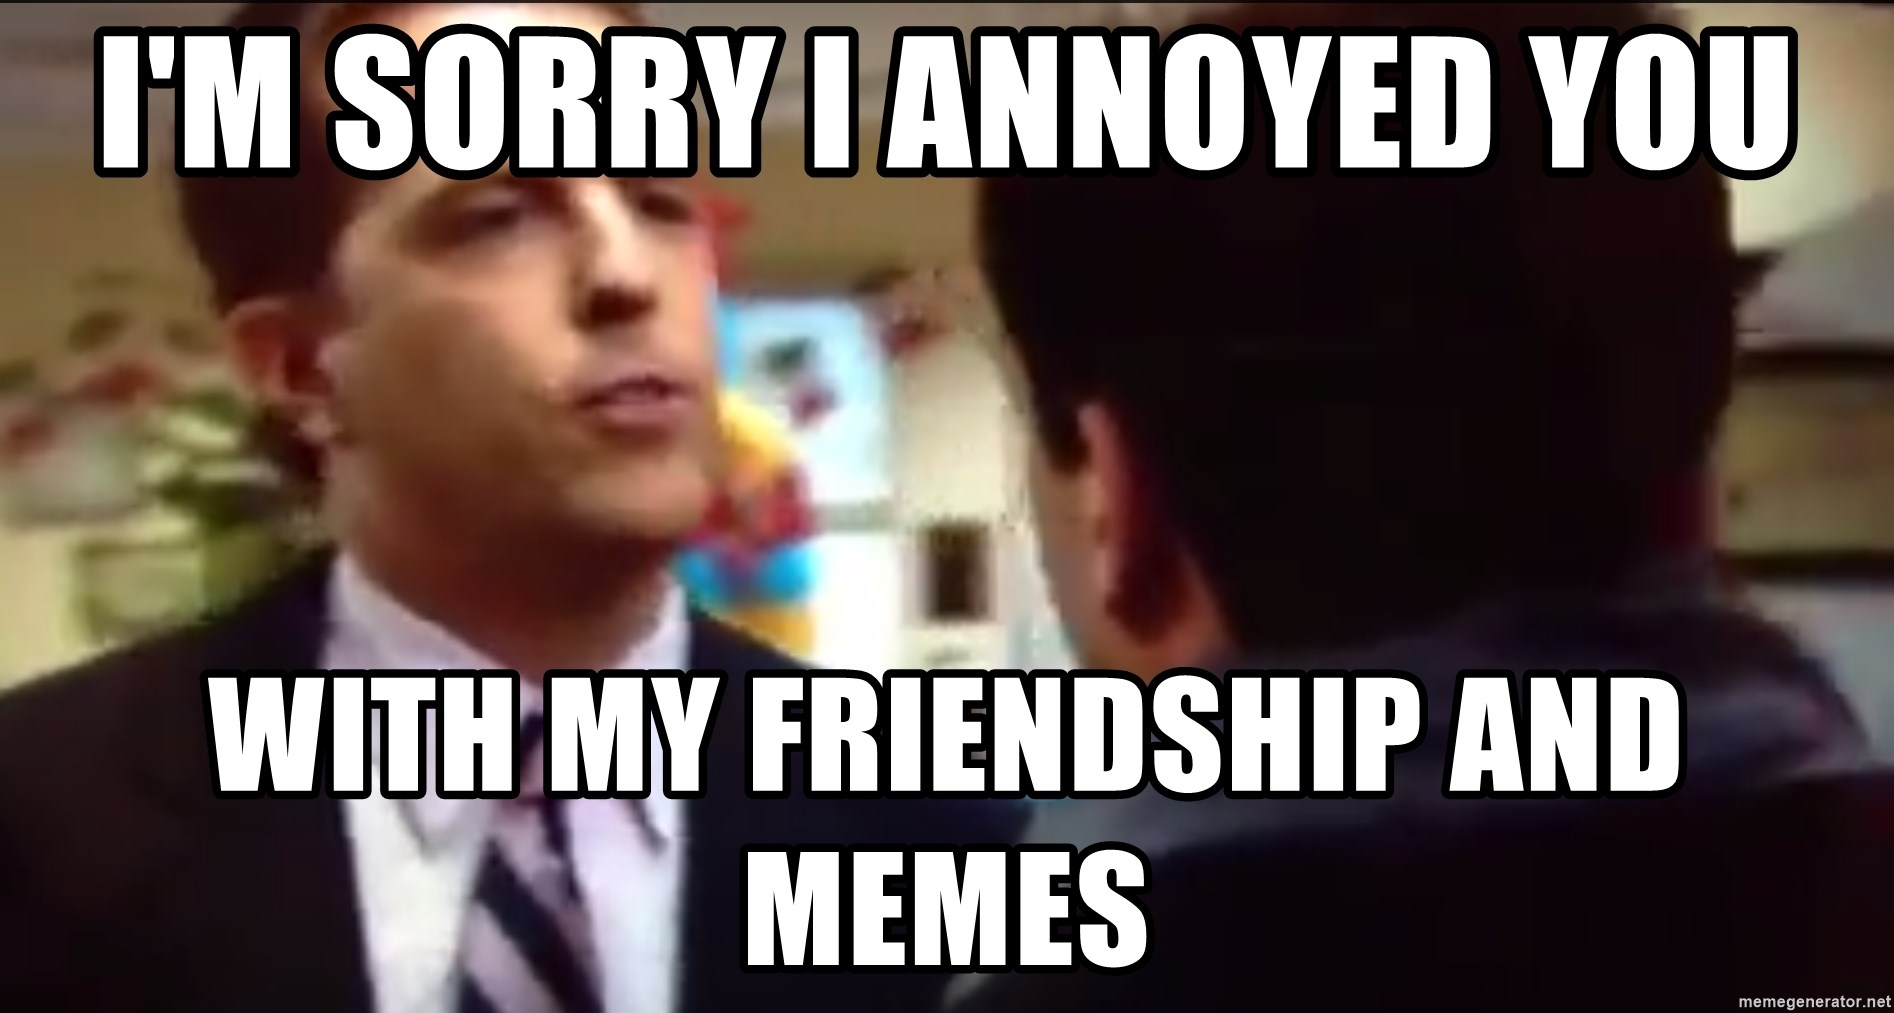 sorry i annoyed you with my friendship - I'm sorry I annoyed you With my friendship and memes